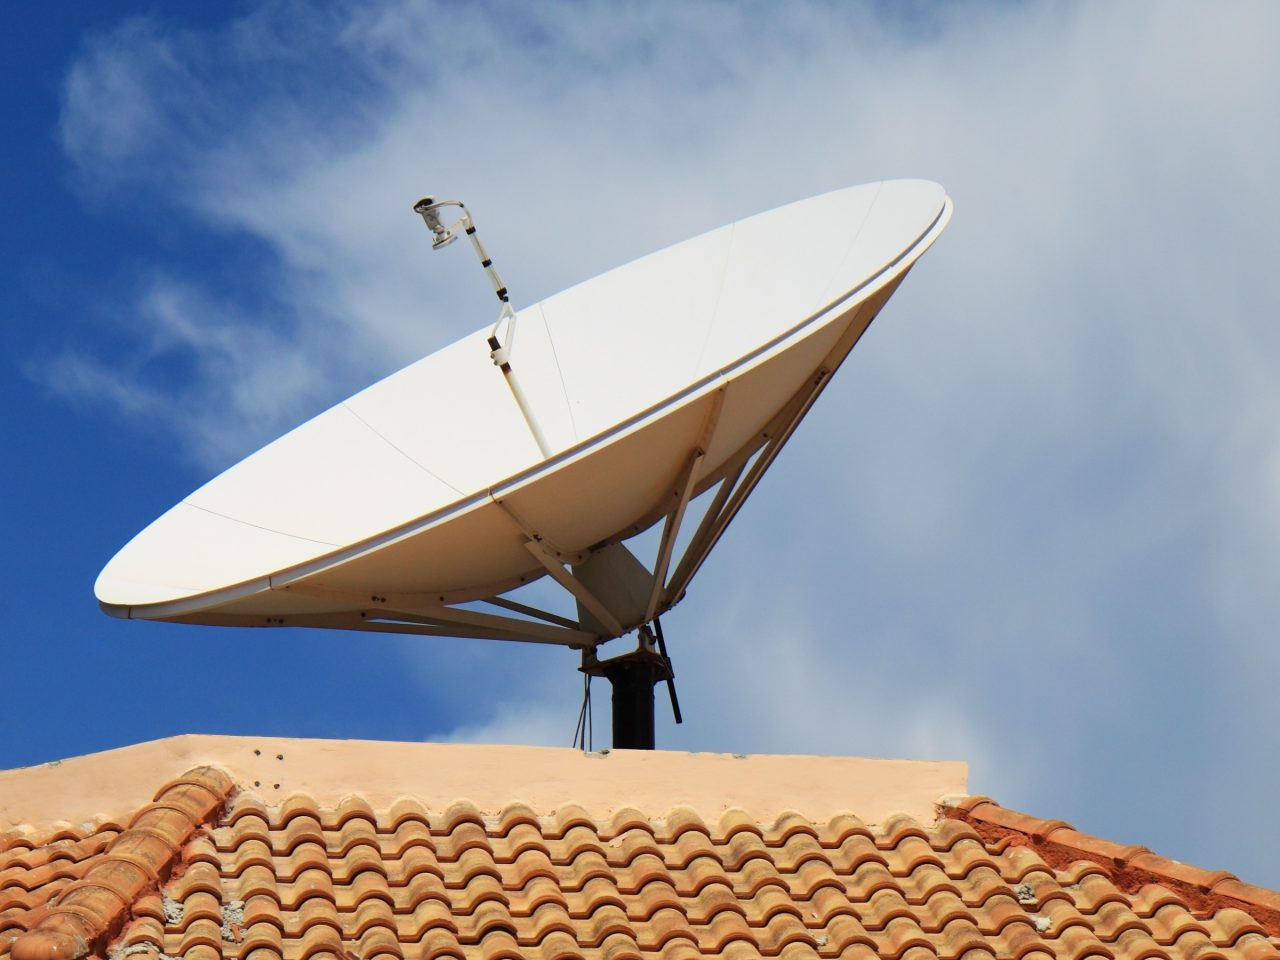 satellite_dish_186994-1-1280x960.jpg